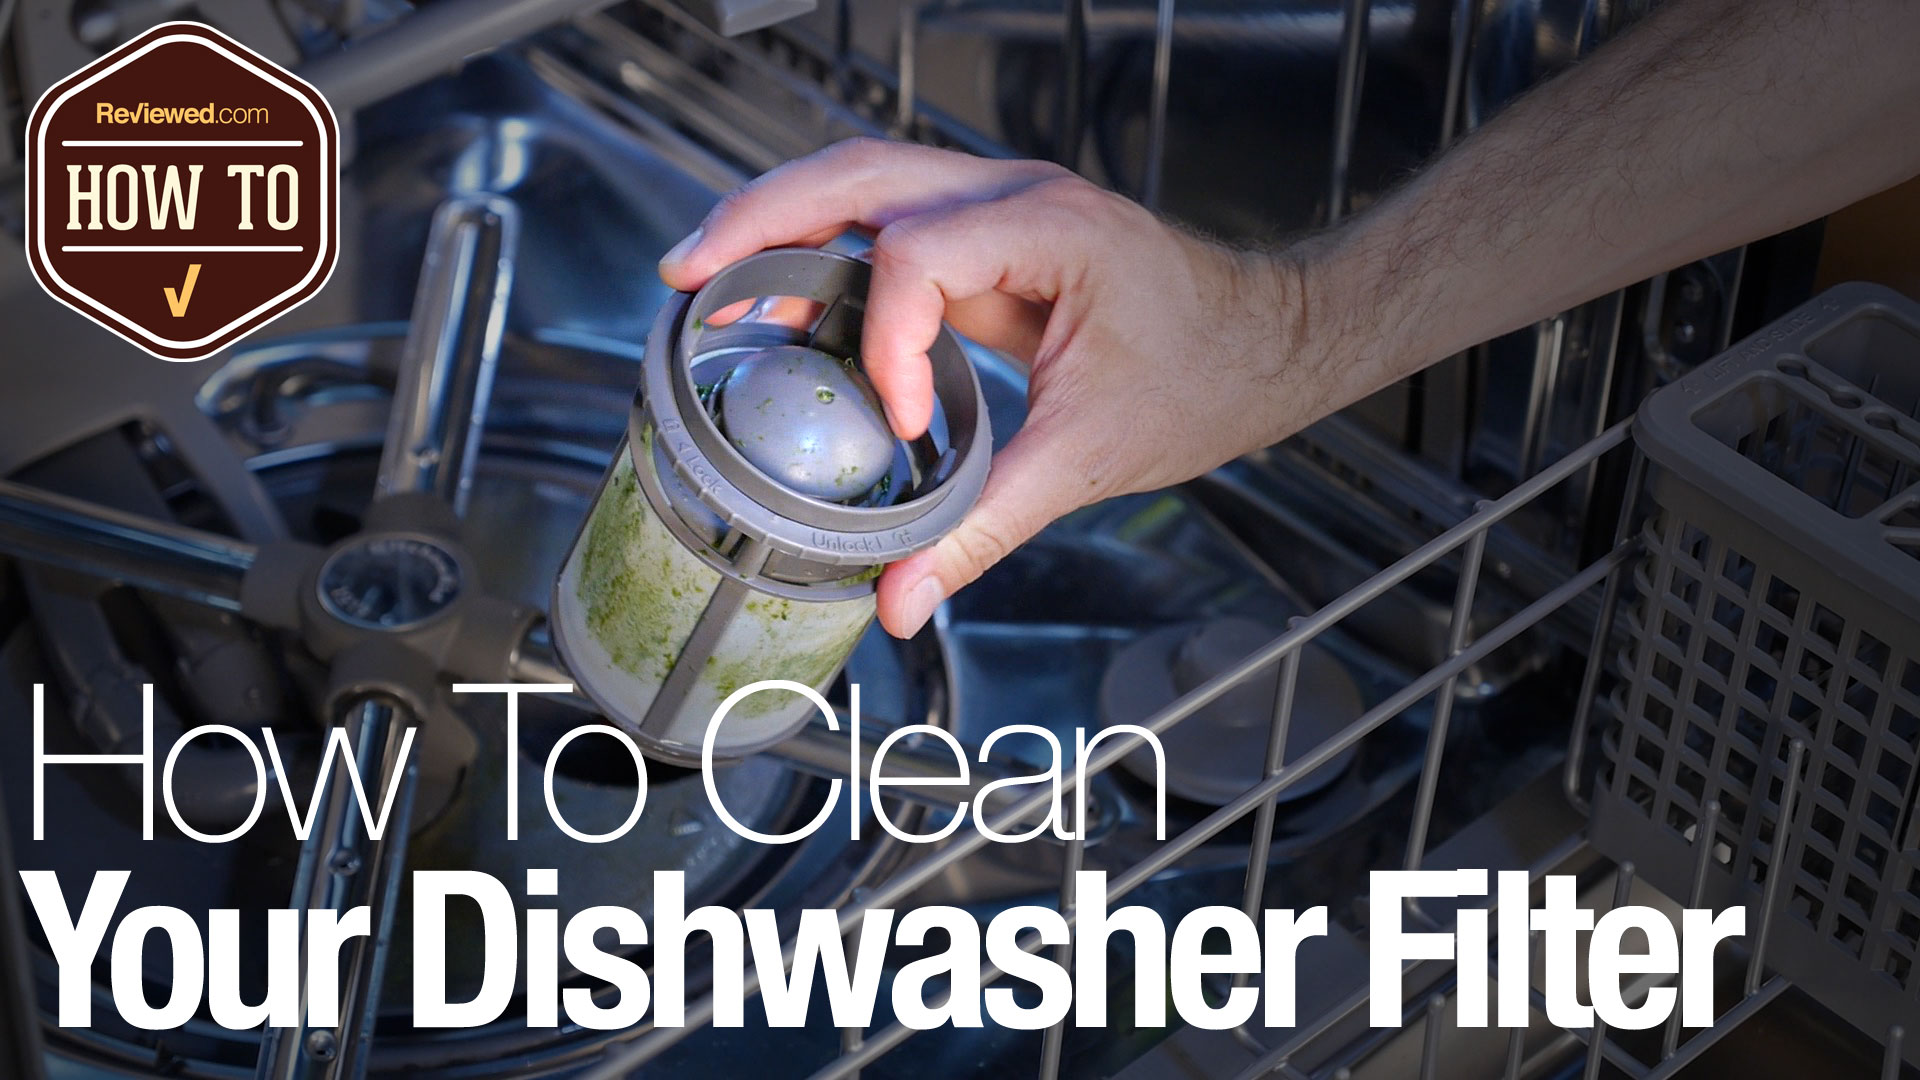 medium resolution of everything you need to know about dishwasher cycles reviewed com dishwashers